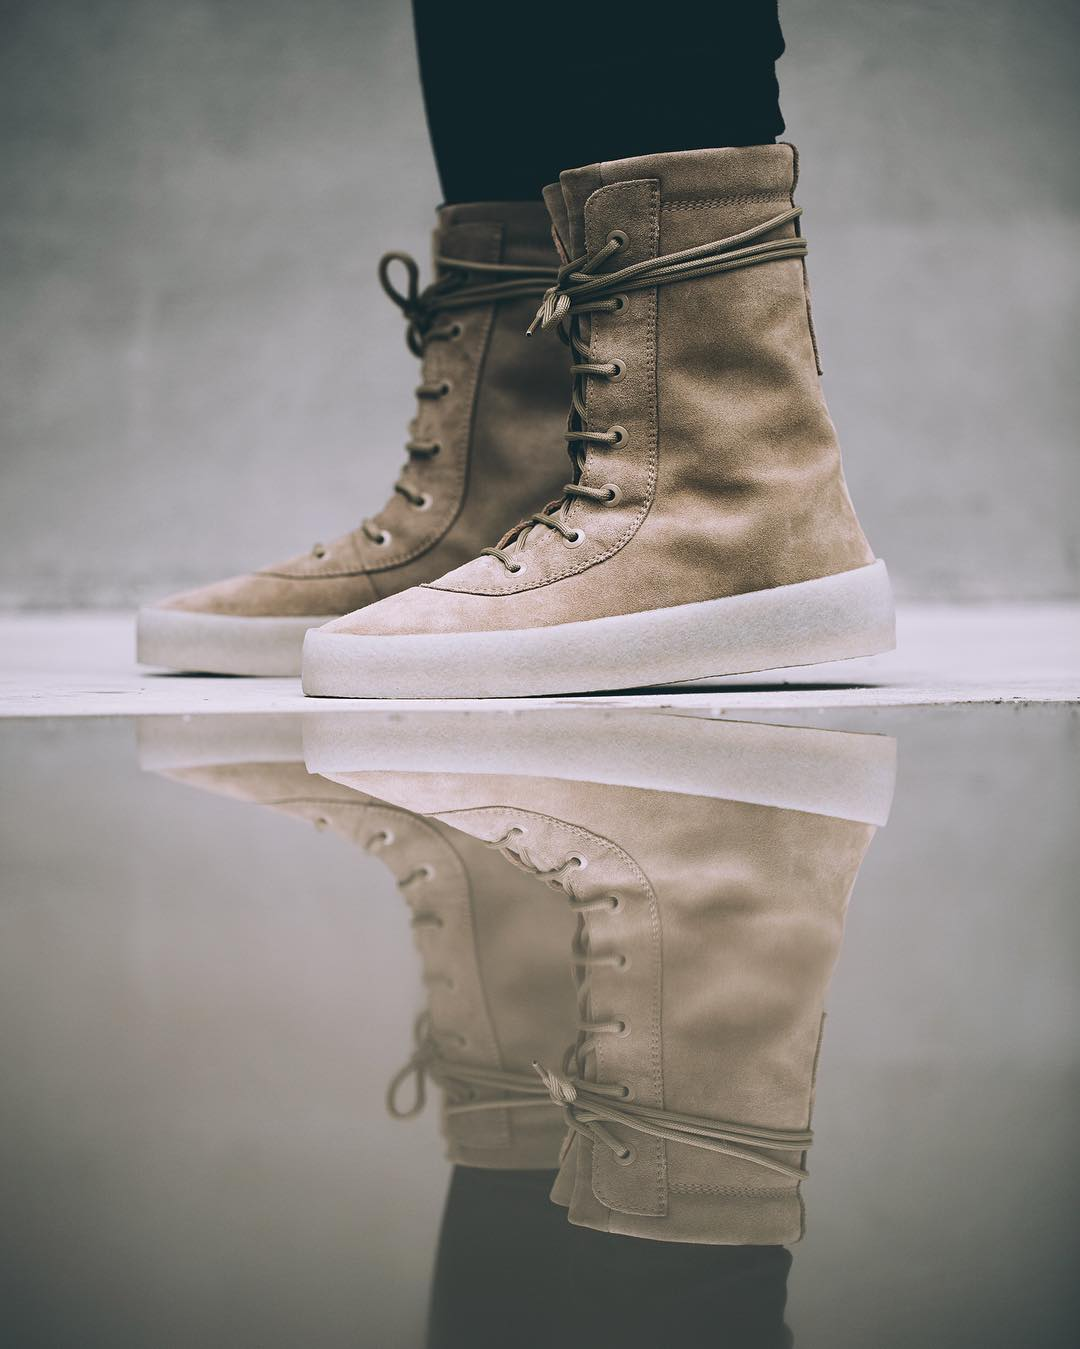 eaba33db941a9 YEEZY SEASON 2 CREPE BOOT · FreshnUp · Online Store Powered by Storenvy